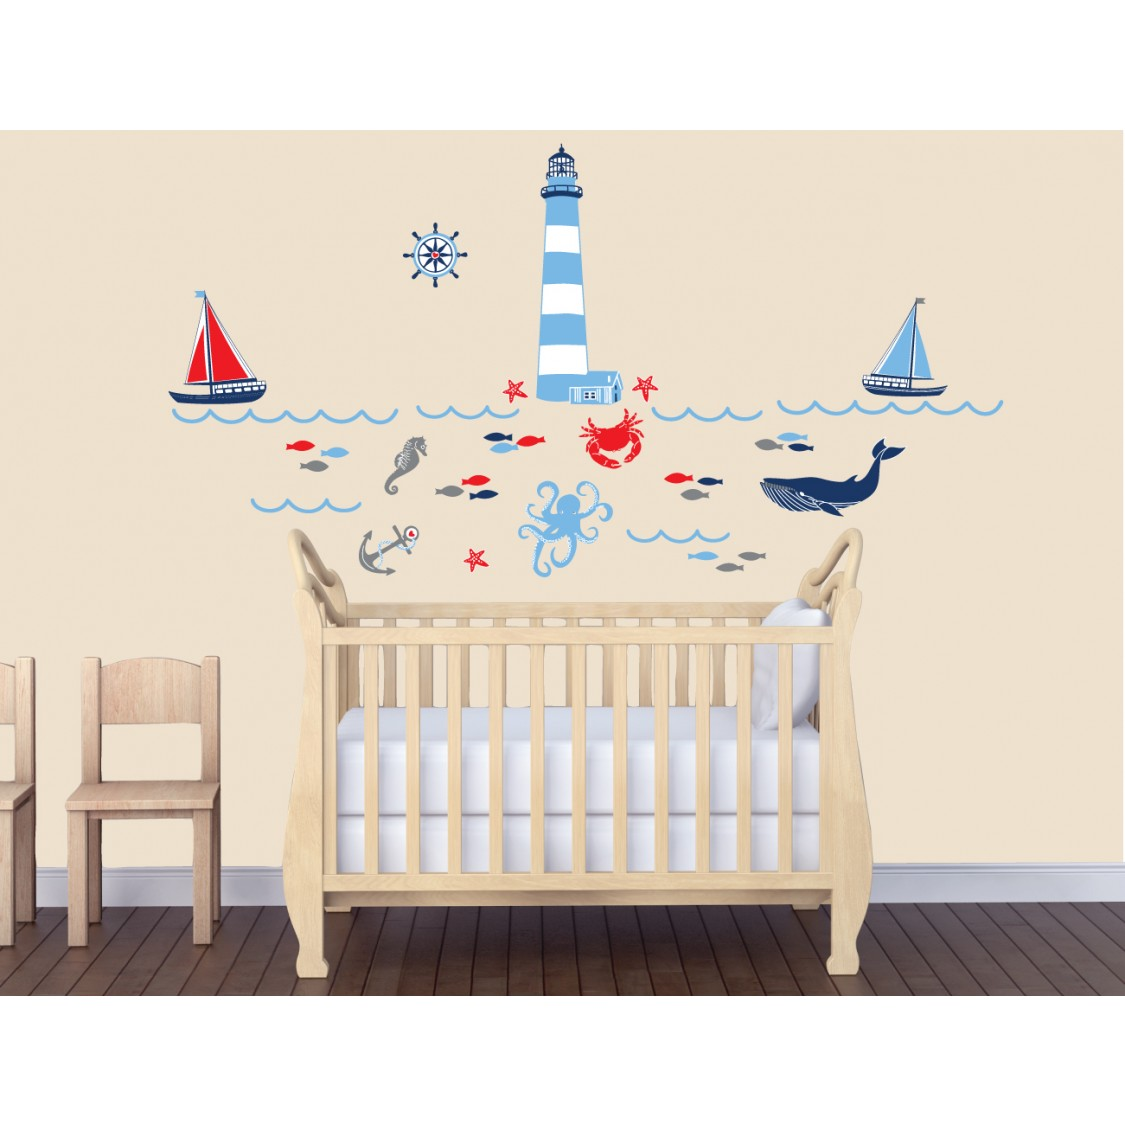 full size underwater murals underwater murals children wall decals large wall decals with nautical wall decals for kids rooms